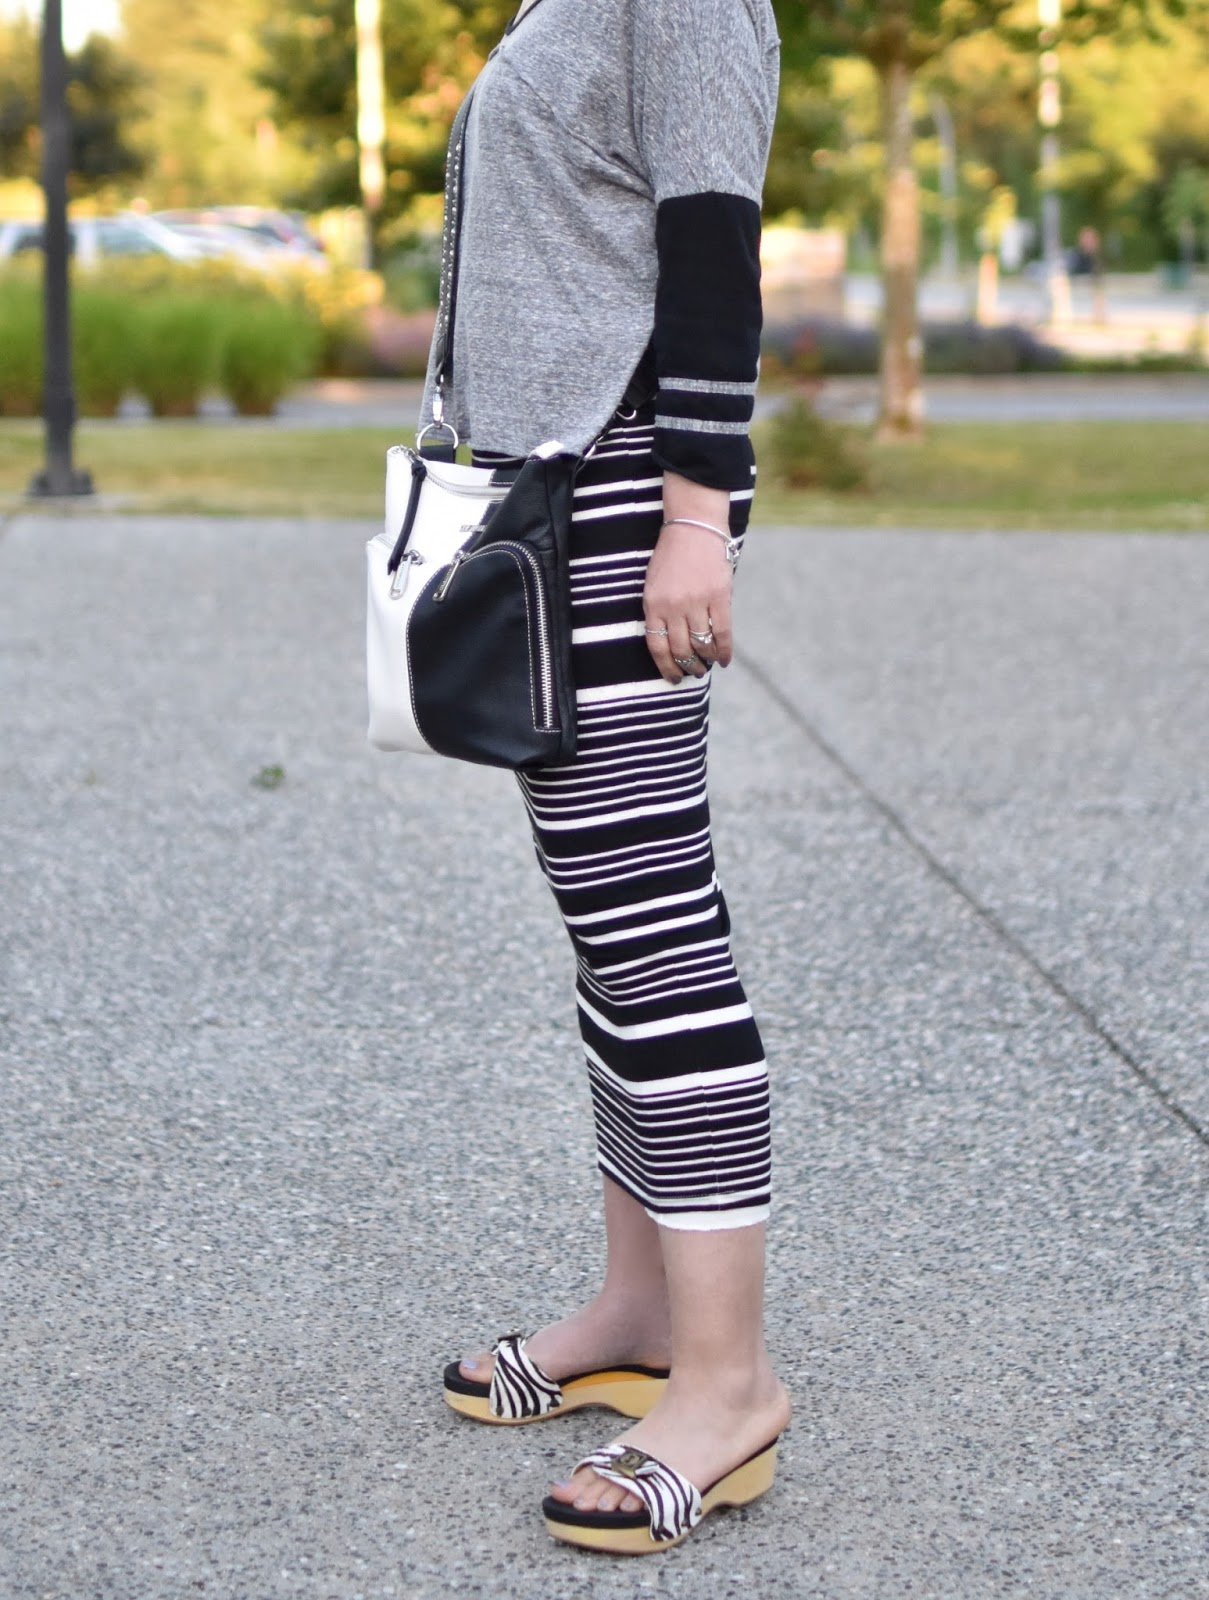 Monika Faulkner personal style inspiration - baseball tee, striped midi-length pencil skirt , Steve Madden cross-body bag, Dr. Scholl's-inspired sandals